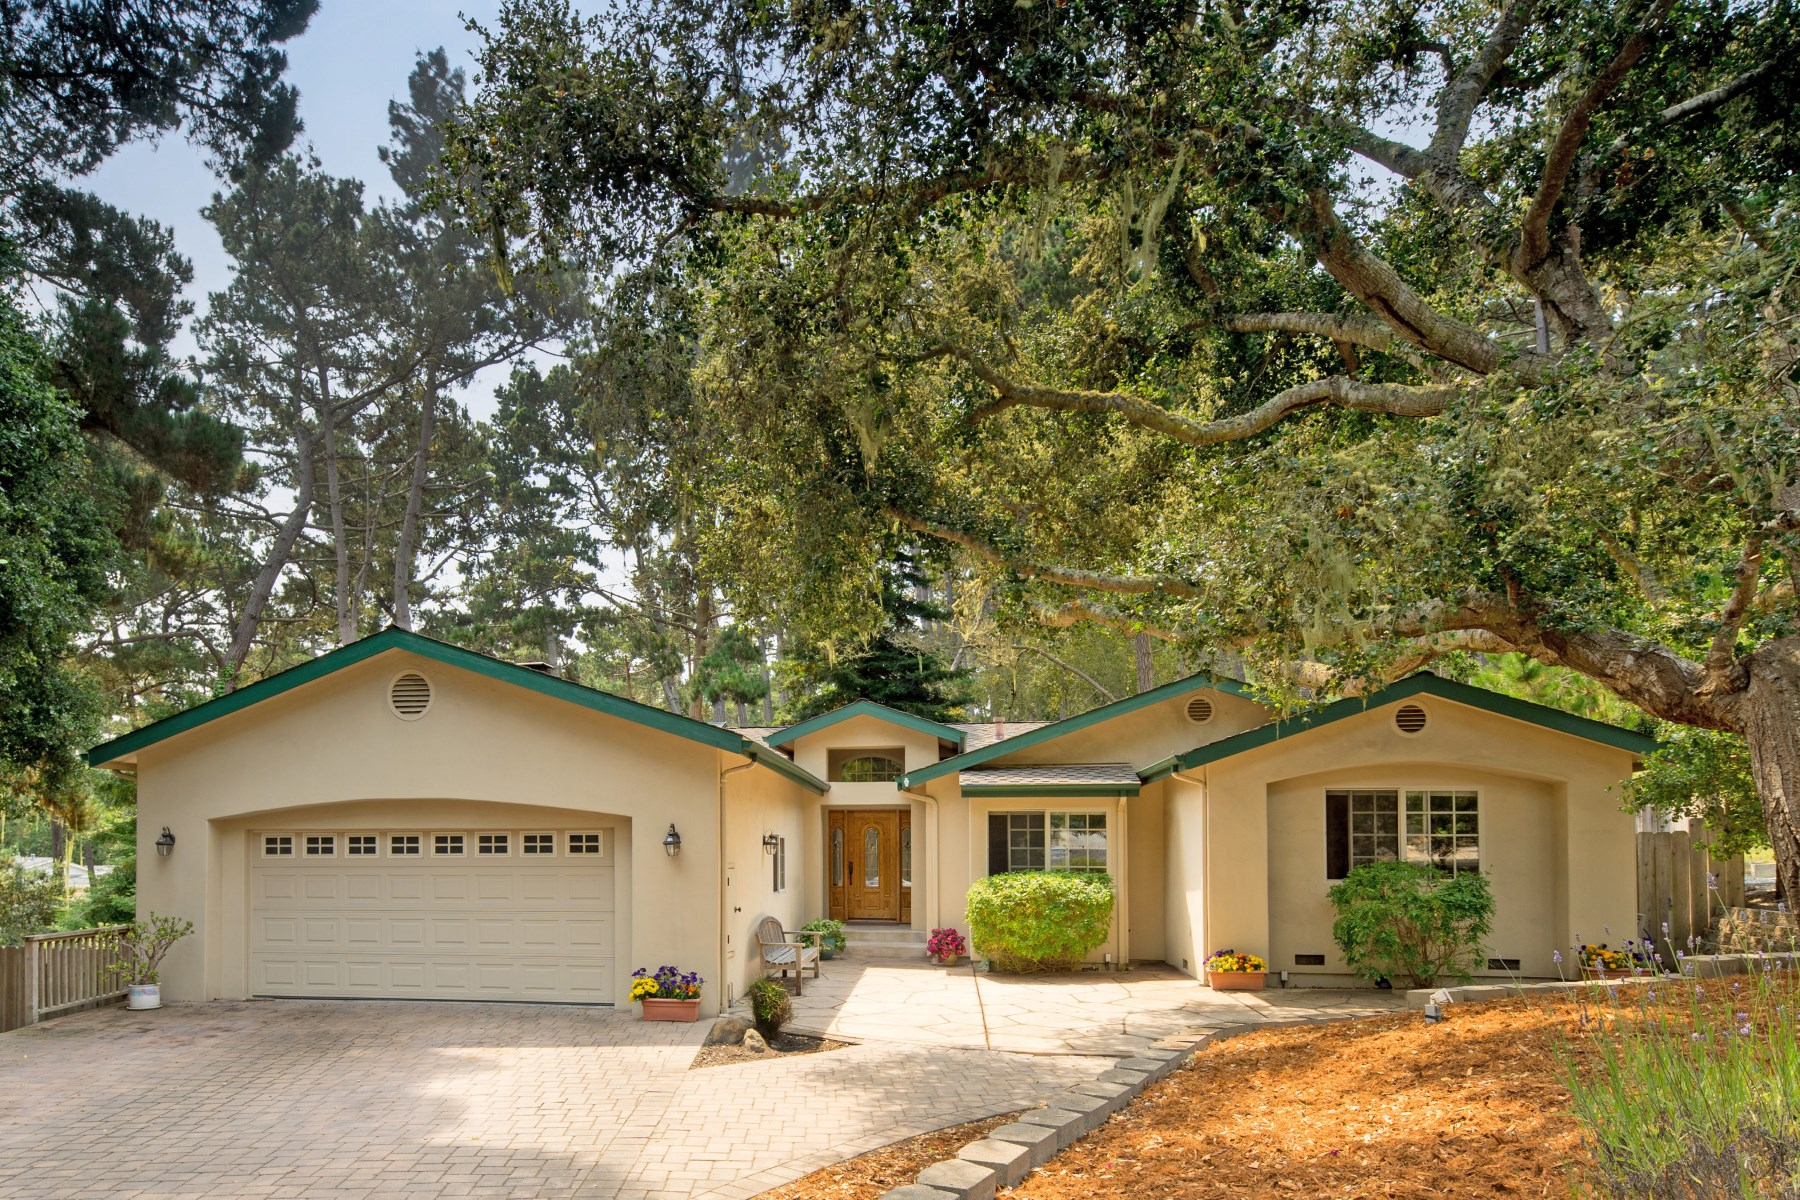 Single Family Home for Sale at Monterey Single Level Elegance 9 Wyndemere Vale Monterey, California, 93940 United States